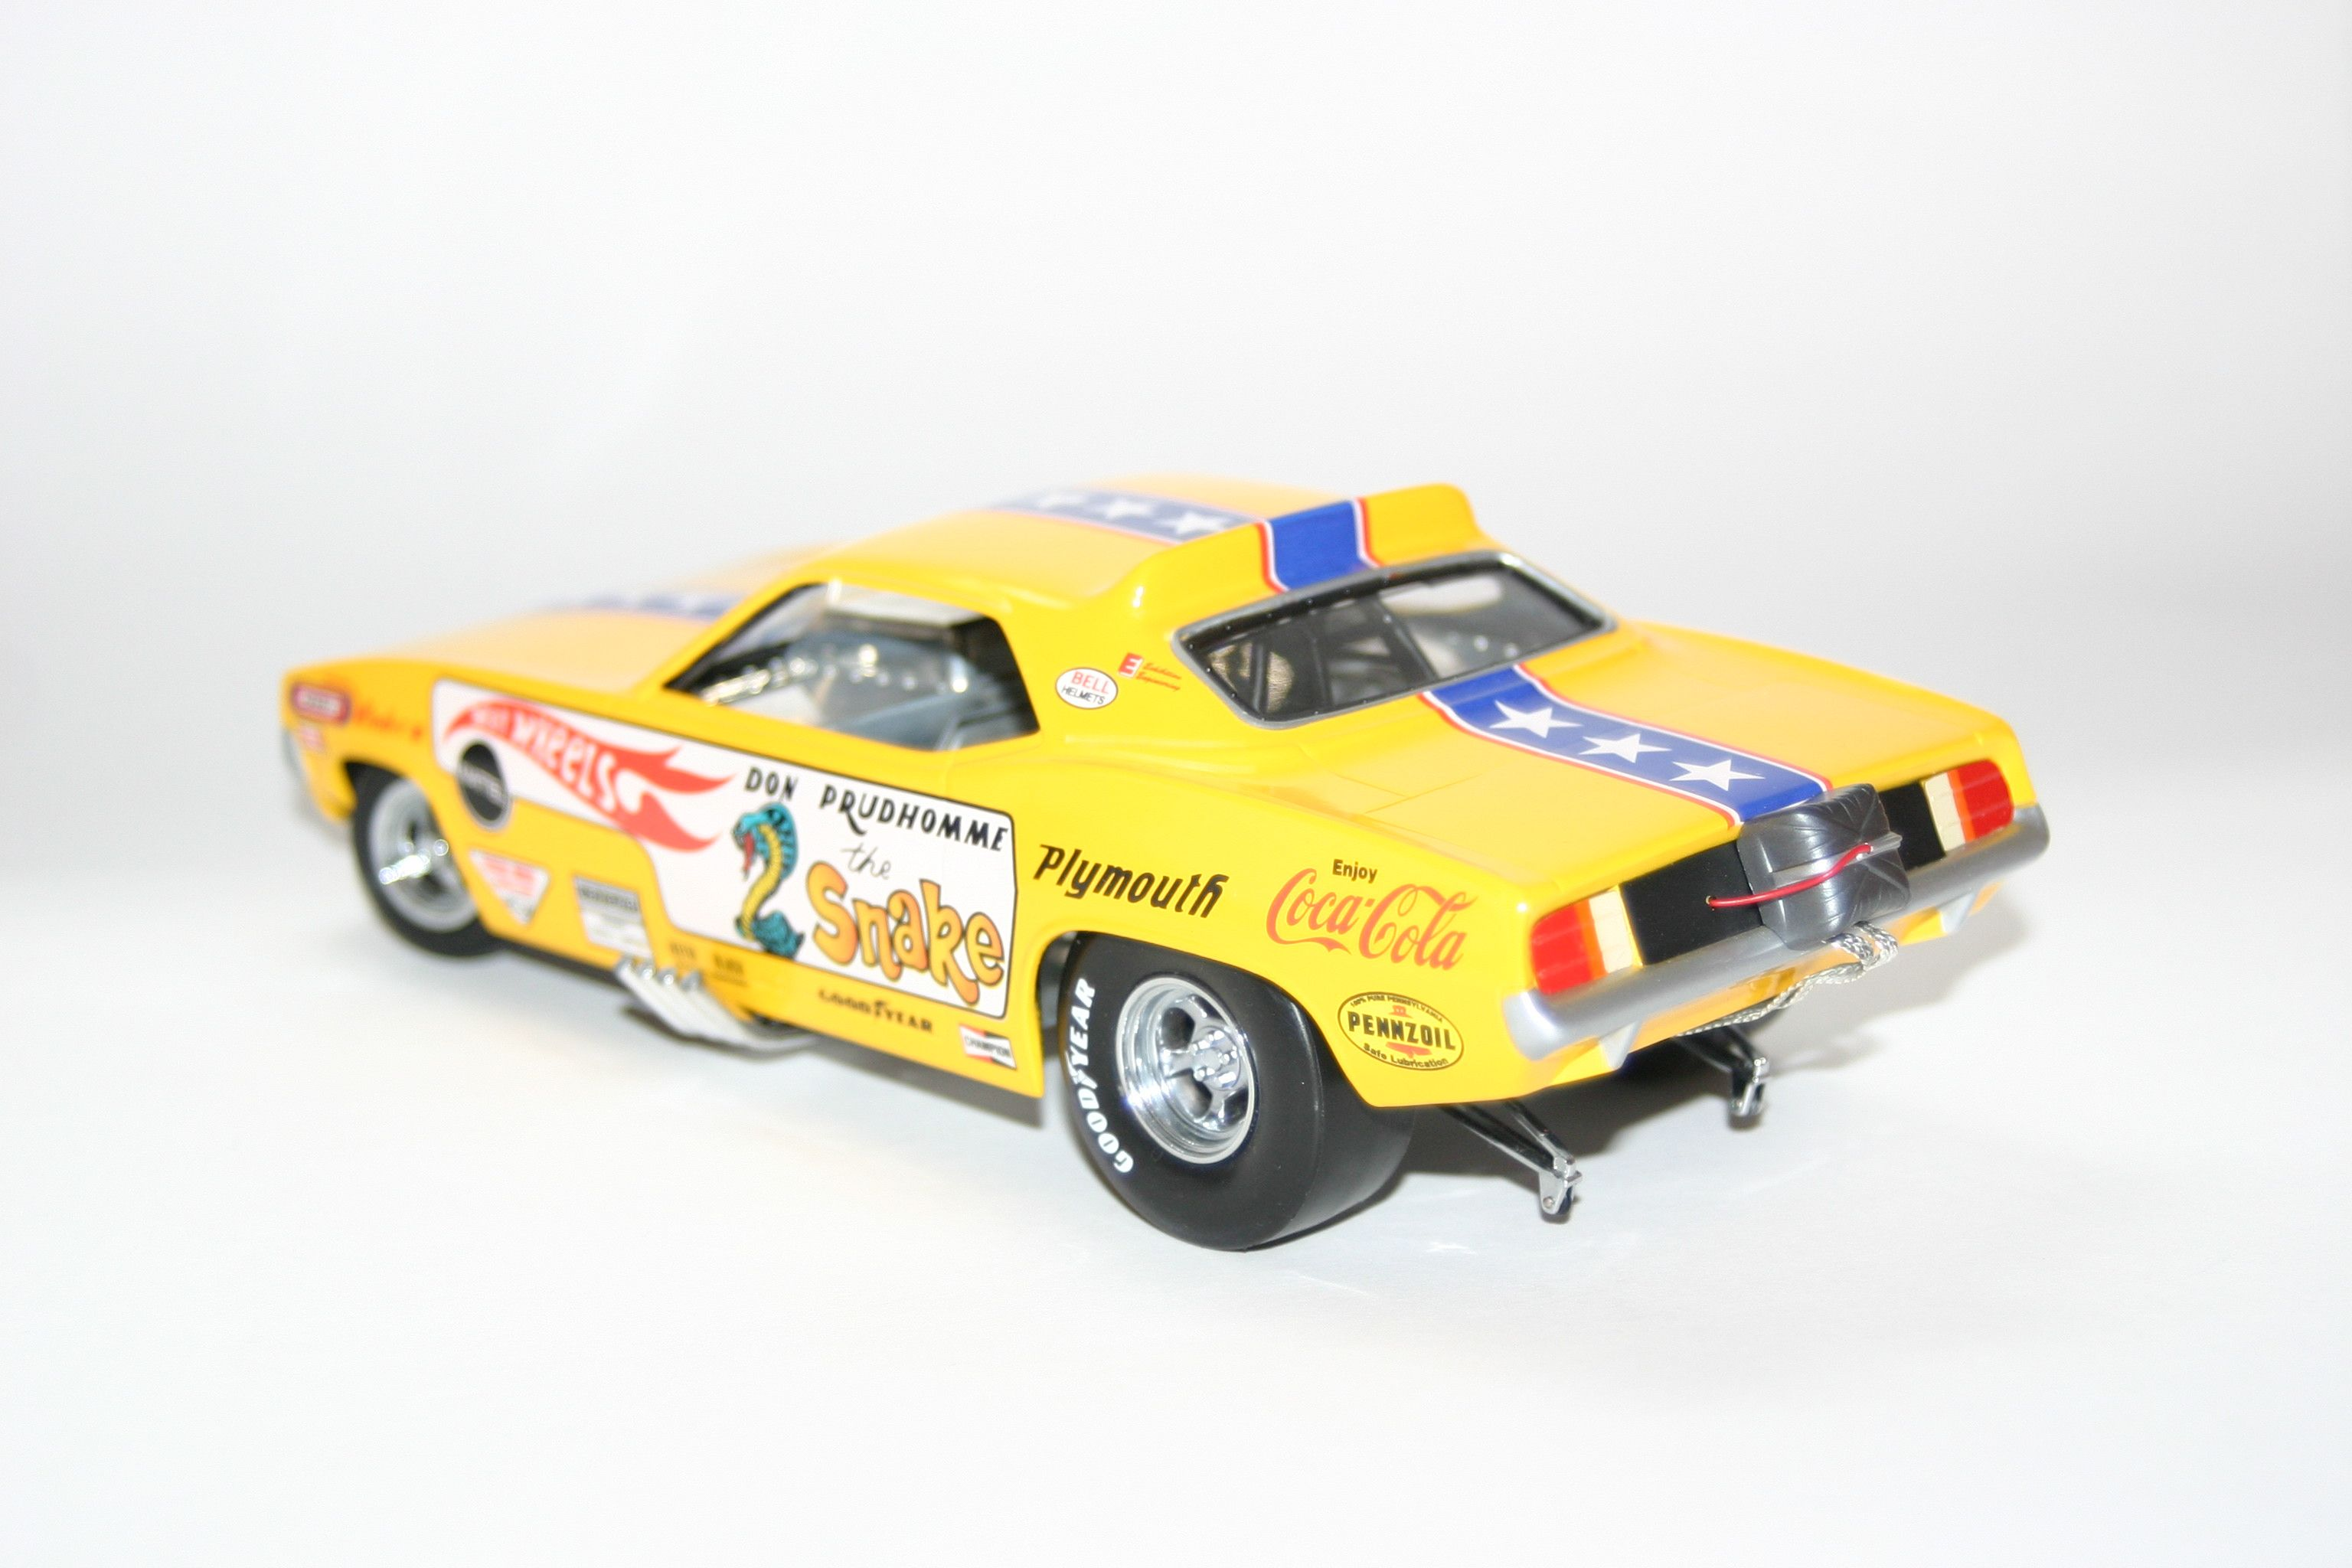 Mattel legends 1 24 1969 hot wheels twin mill concept car electronic - Plymouth Barracuda Snake Funny Car Dragster 1 24 Scale By Hot Wheels Legends